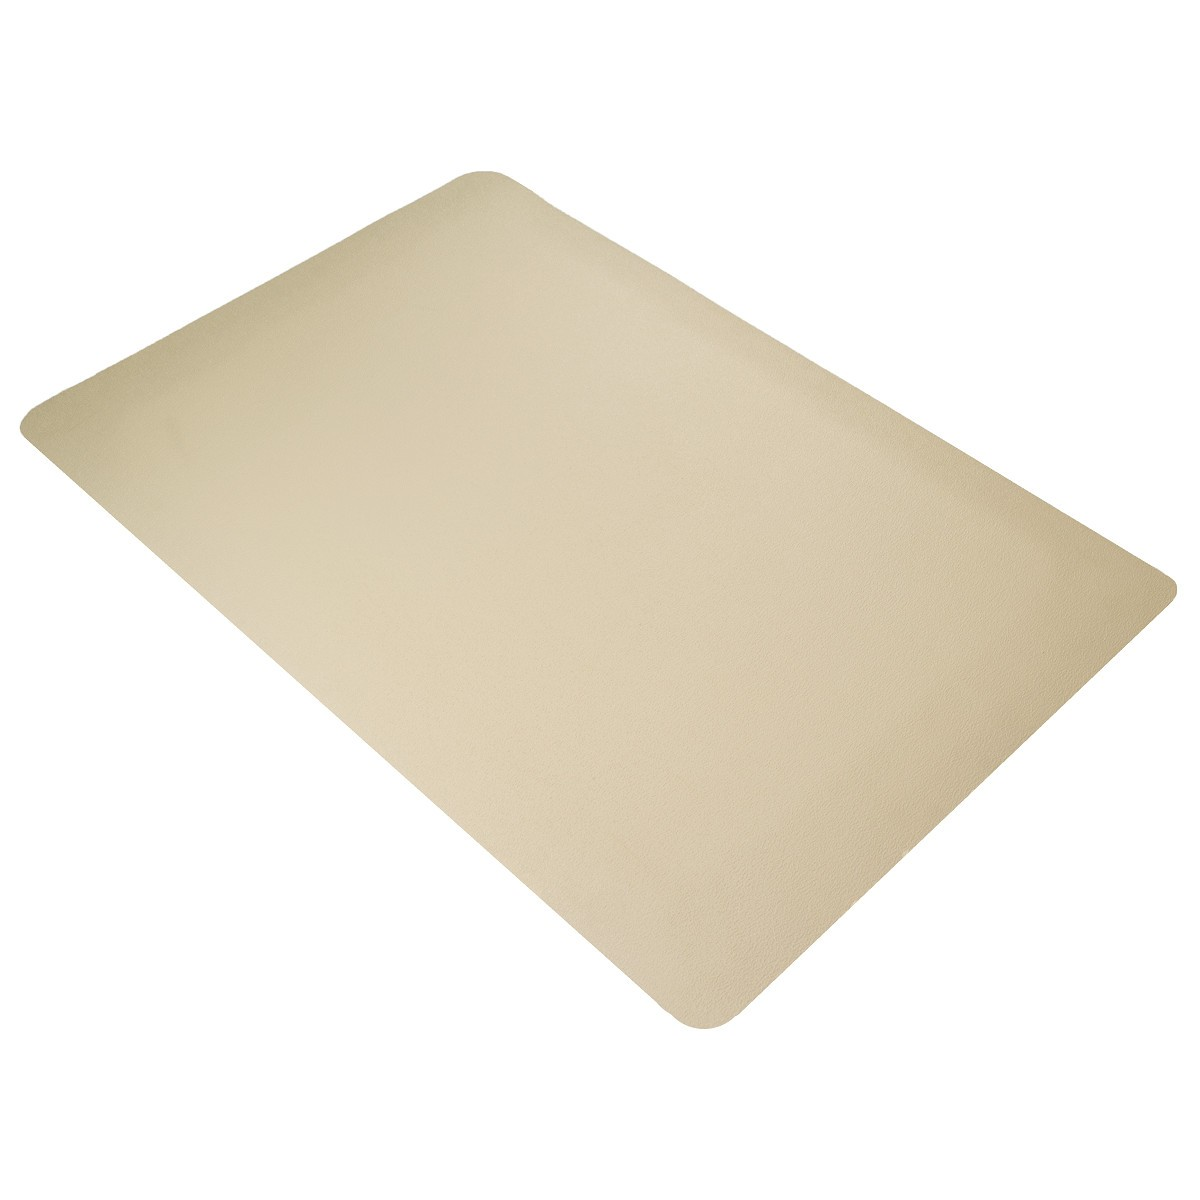 Wearwell 423 Soft Rock Floor Mat Sandstone Fullsource Com